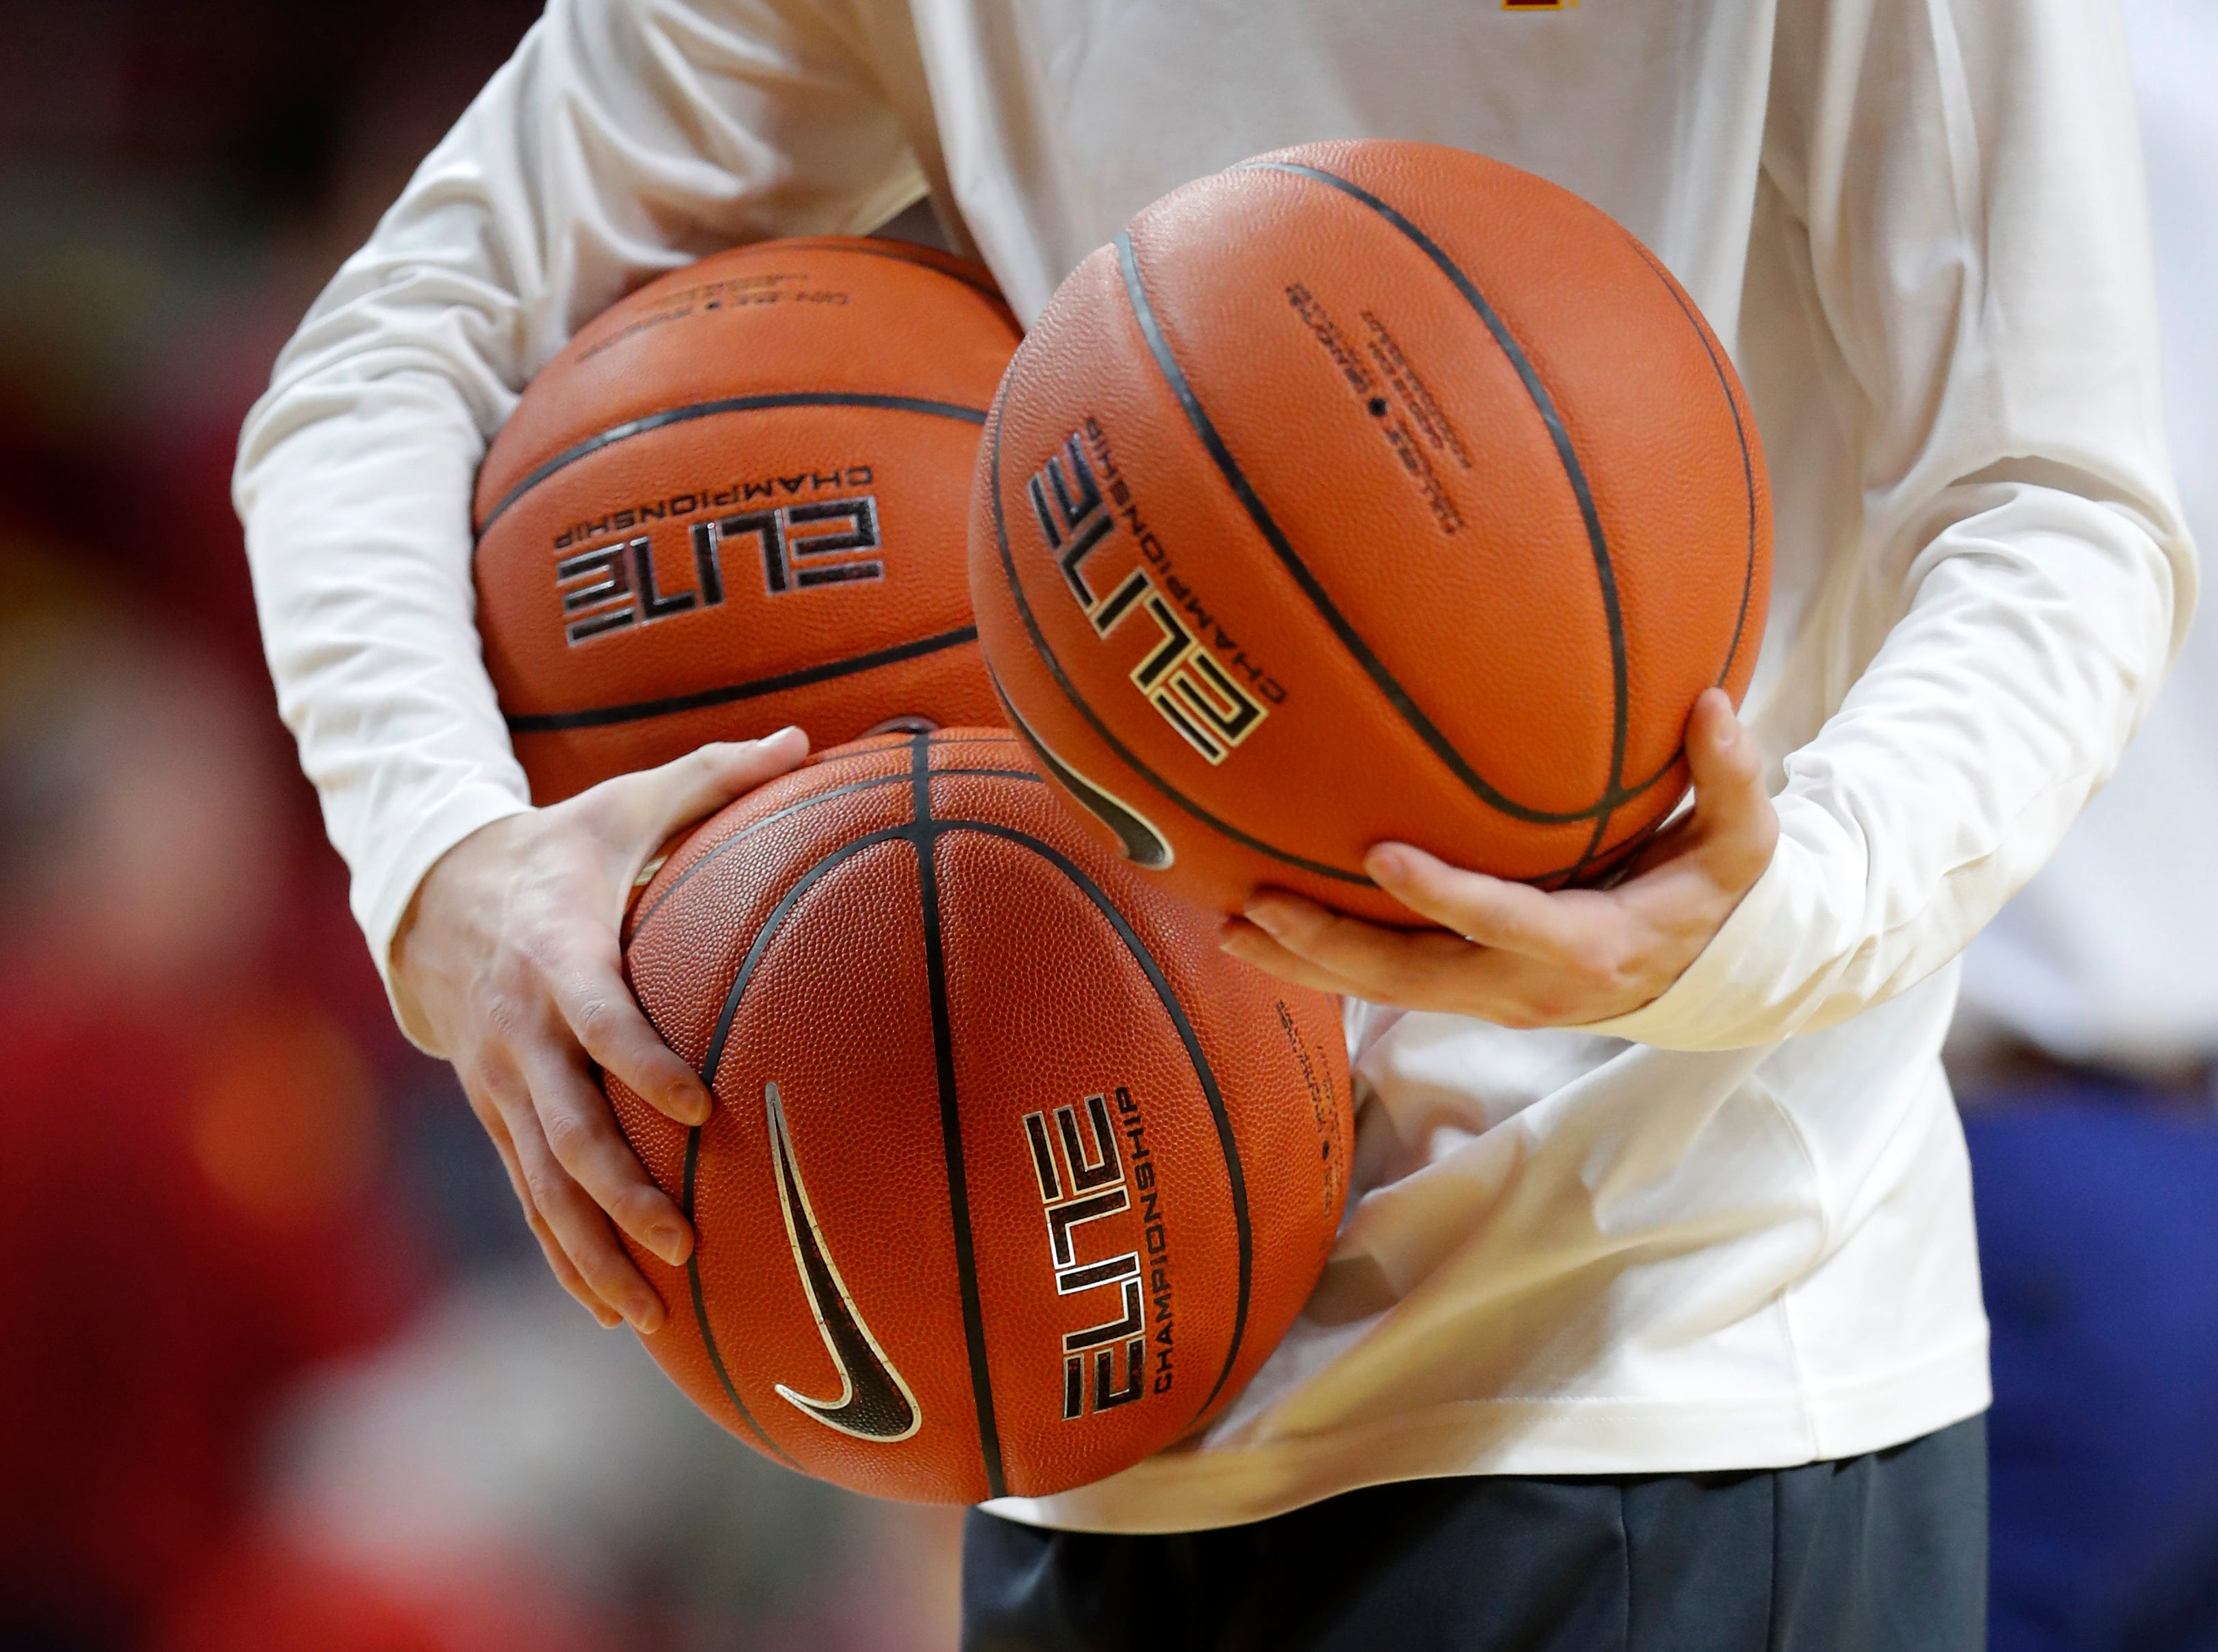 An Iowa State manage holds basketballs before an NCAA college basketball game between Iowa State and Missouri, Friday, Nov. 9, 2018, in Ames, Iowa.